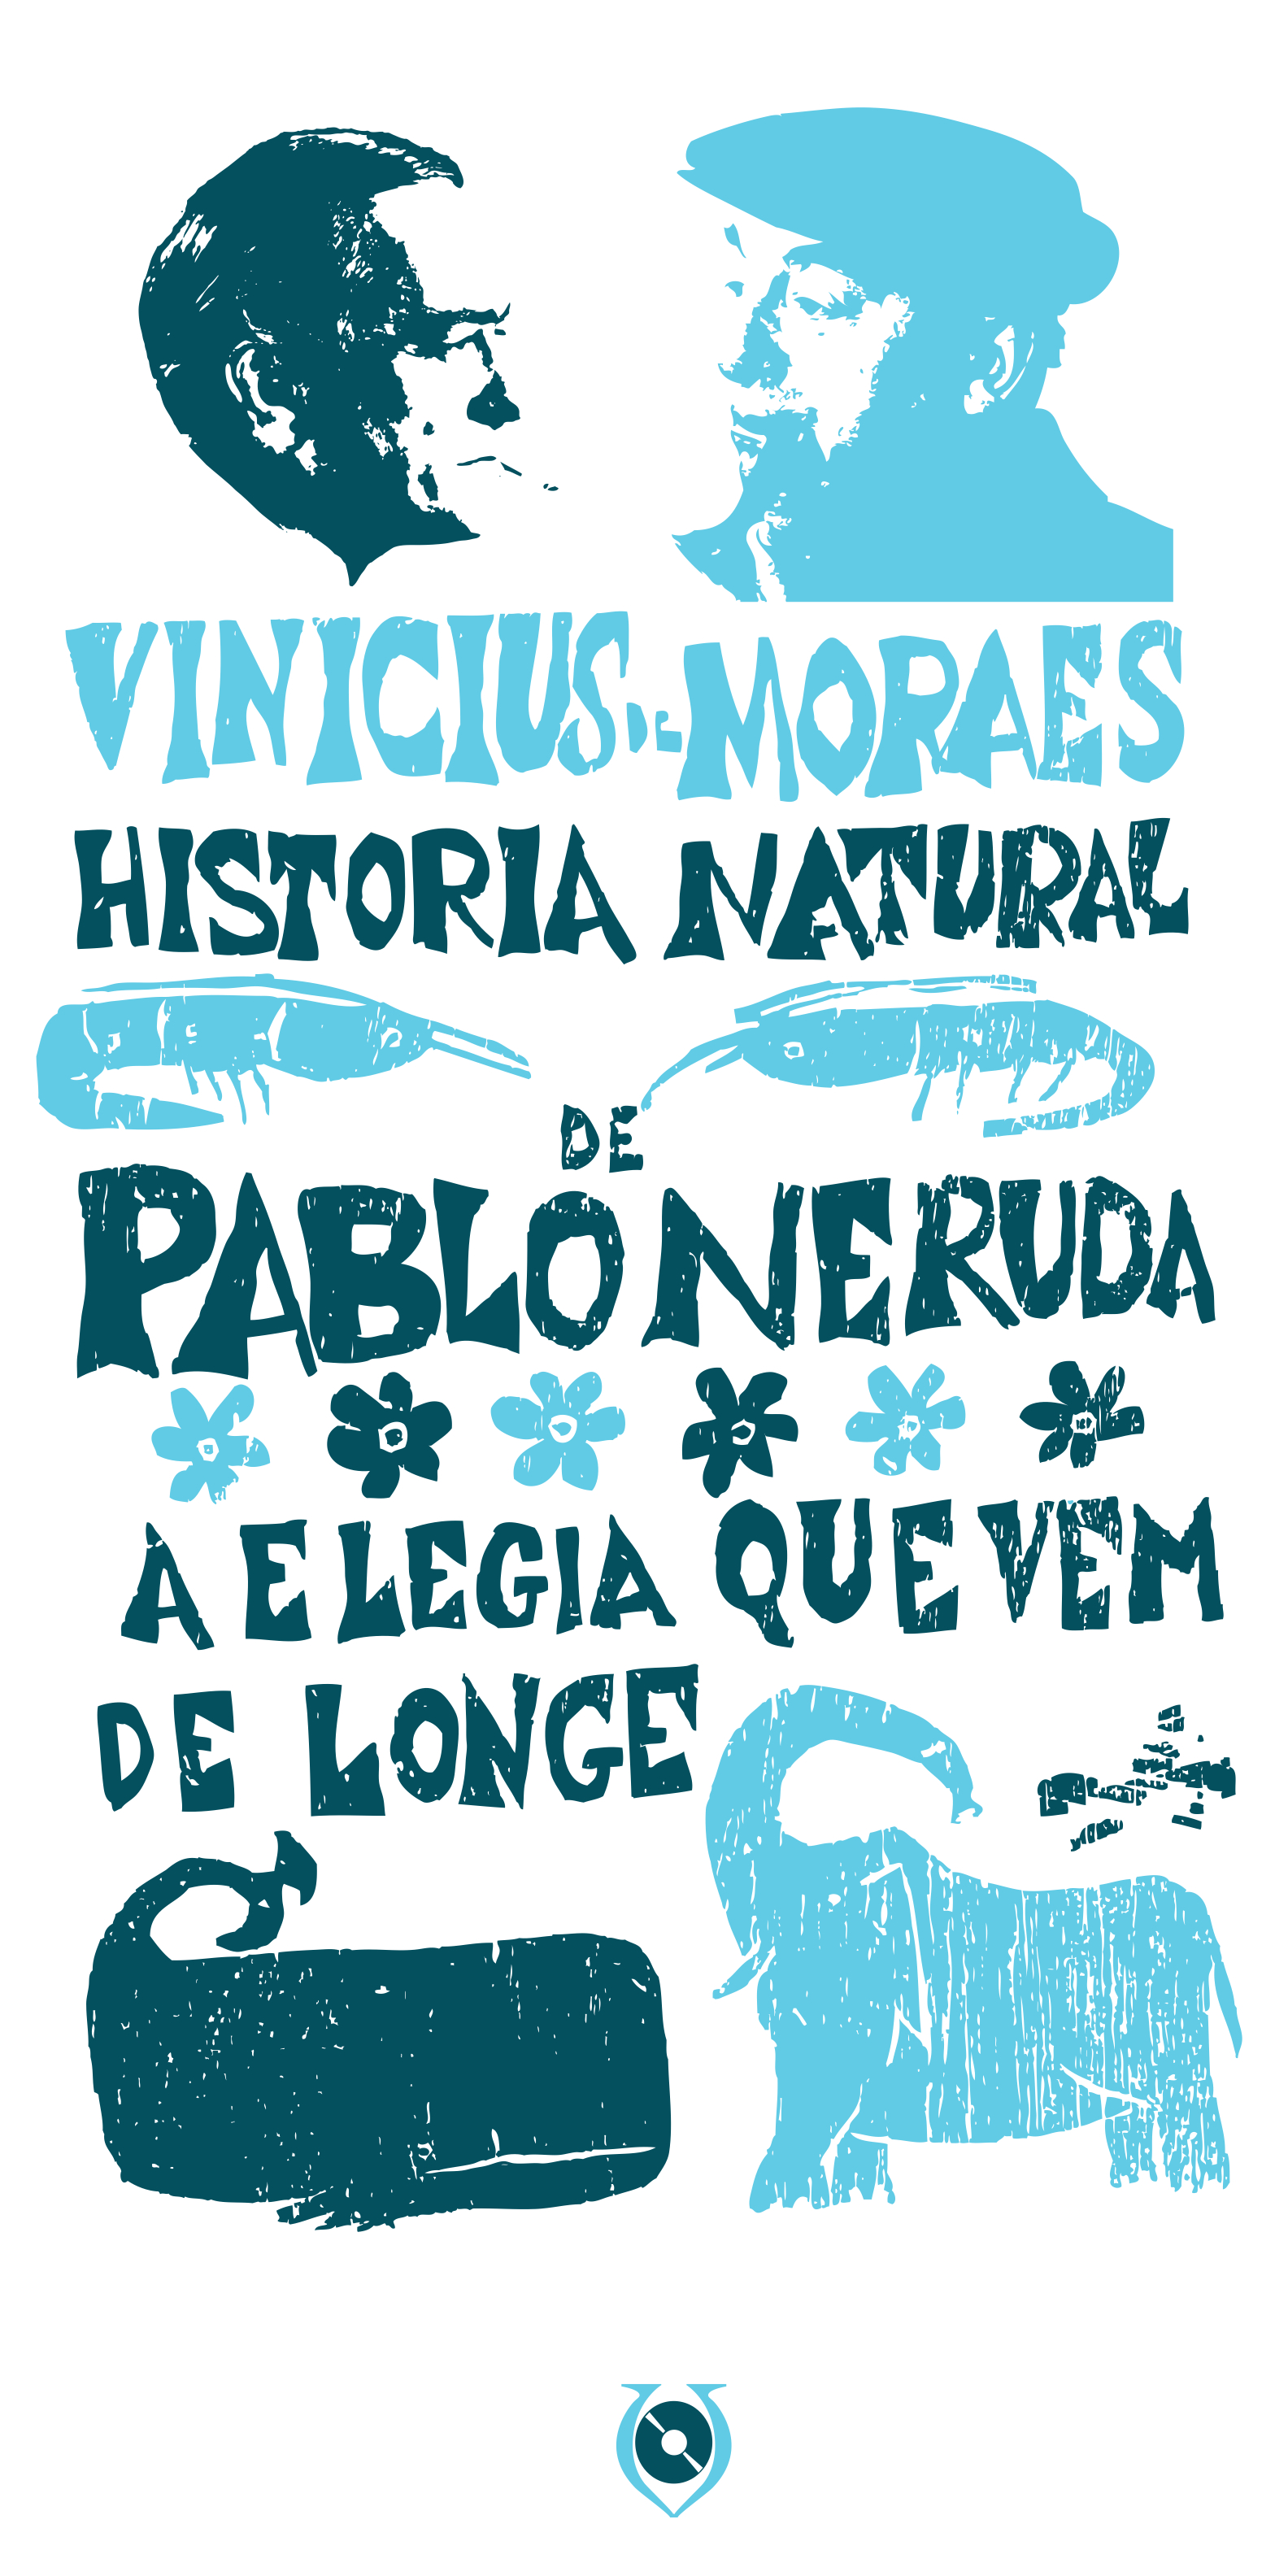 a literary analysis of walking around by pablo neruda Analisis walking around de pablo neruda - free download as word doc (doc / docx), pdf file (pdf), text file (txt) or read online for free.